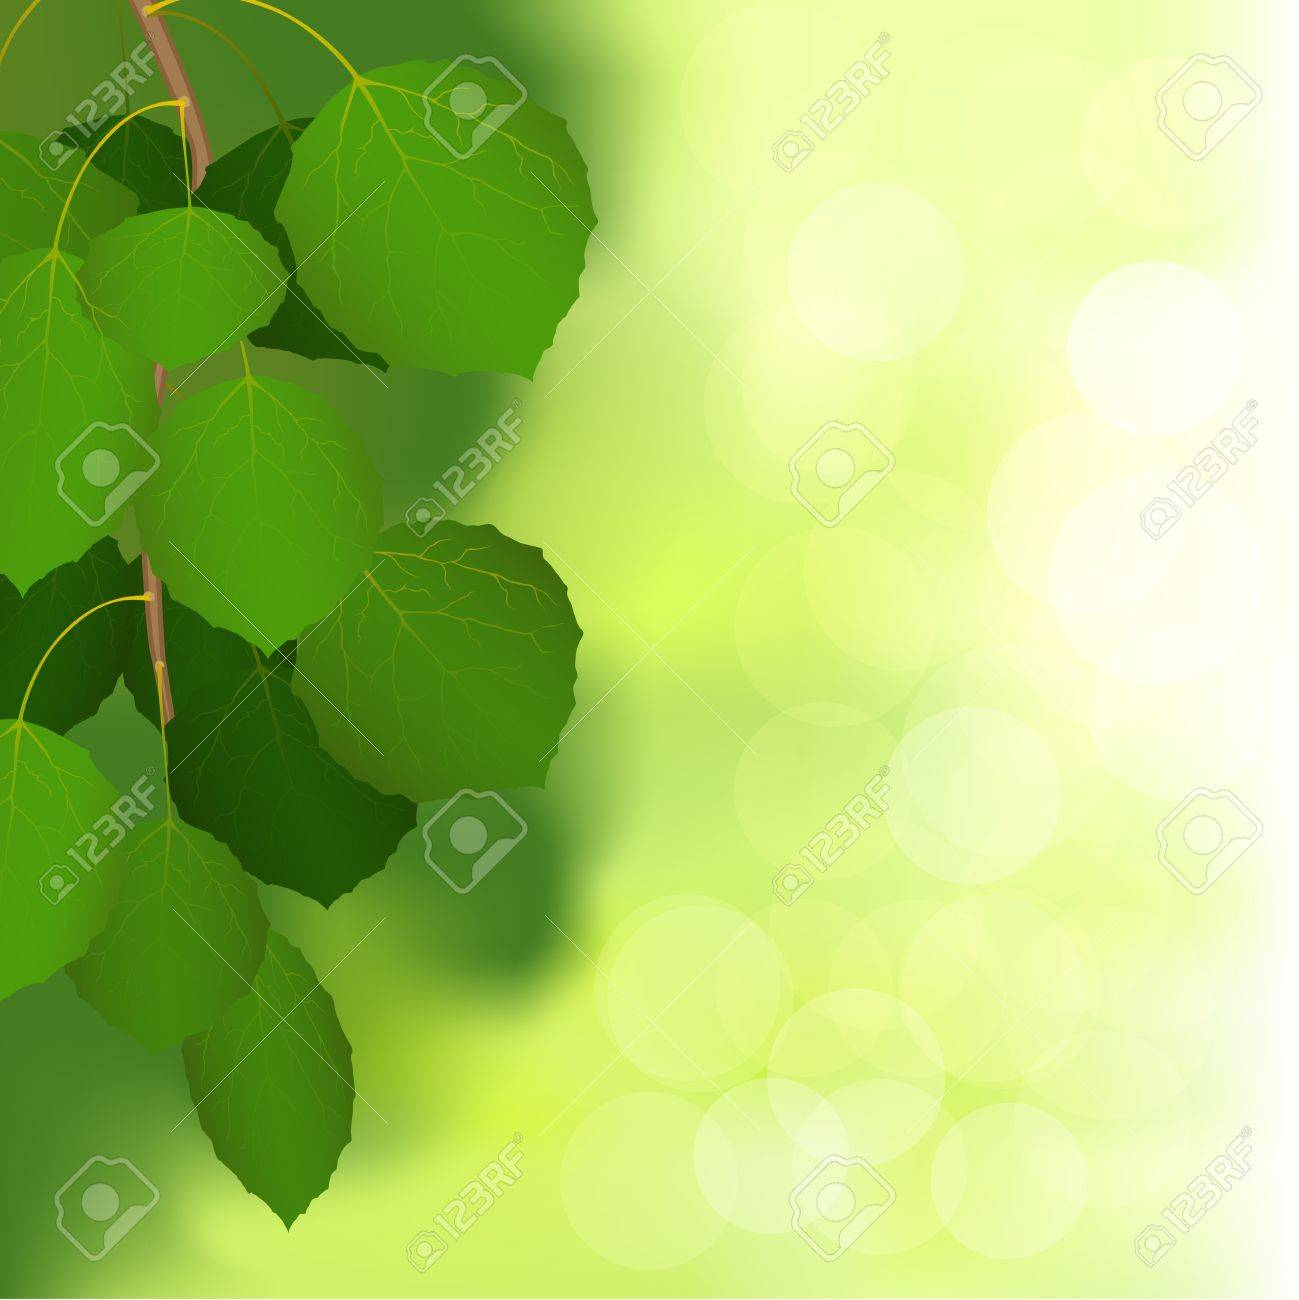 Vector illustration birch branch on an unsharp background of nature Stock Vector - 14098087